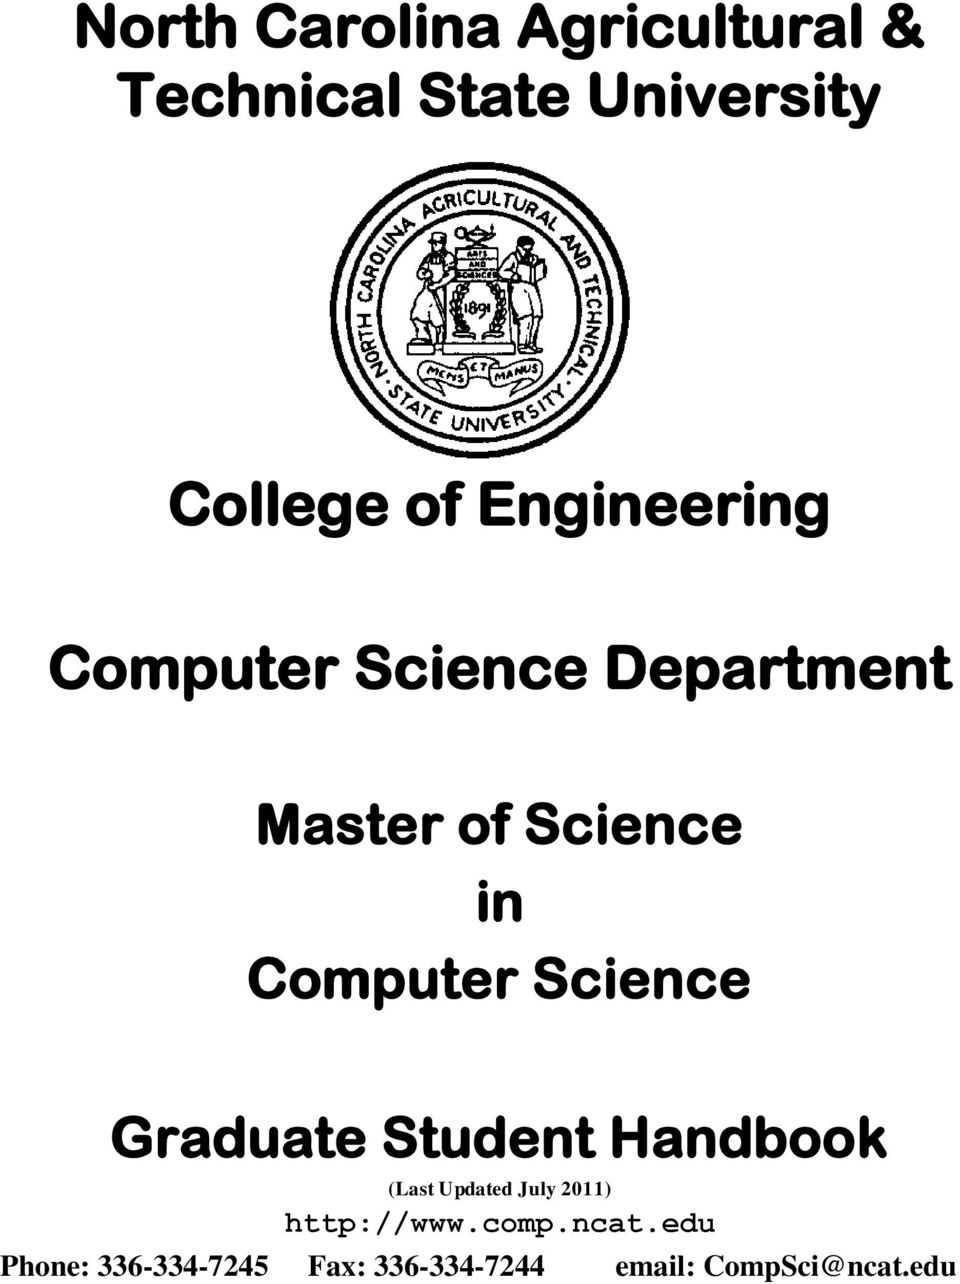 Science Graduate Student Handbook (Last Updated July 2011) http://www.